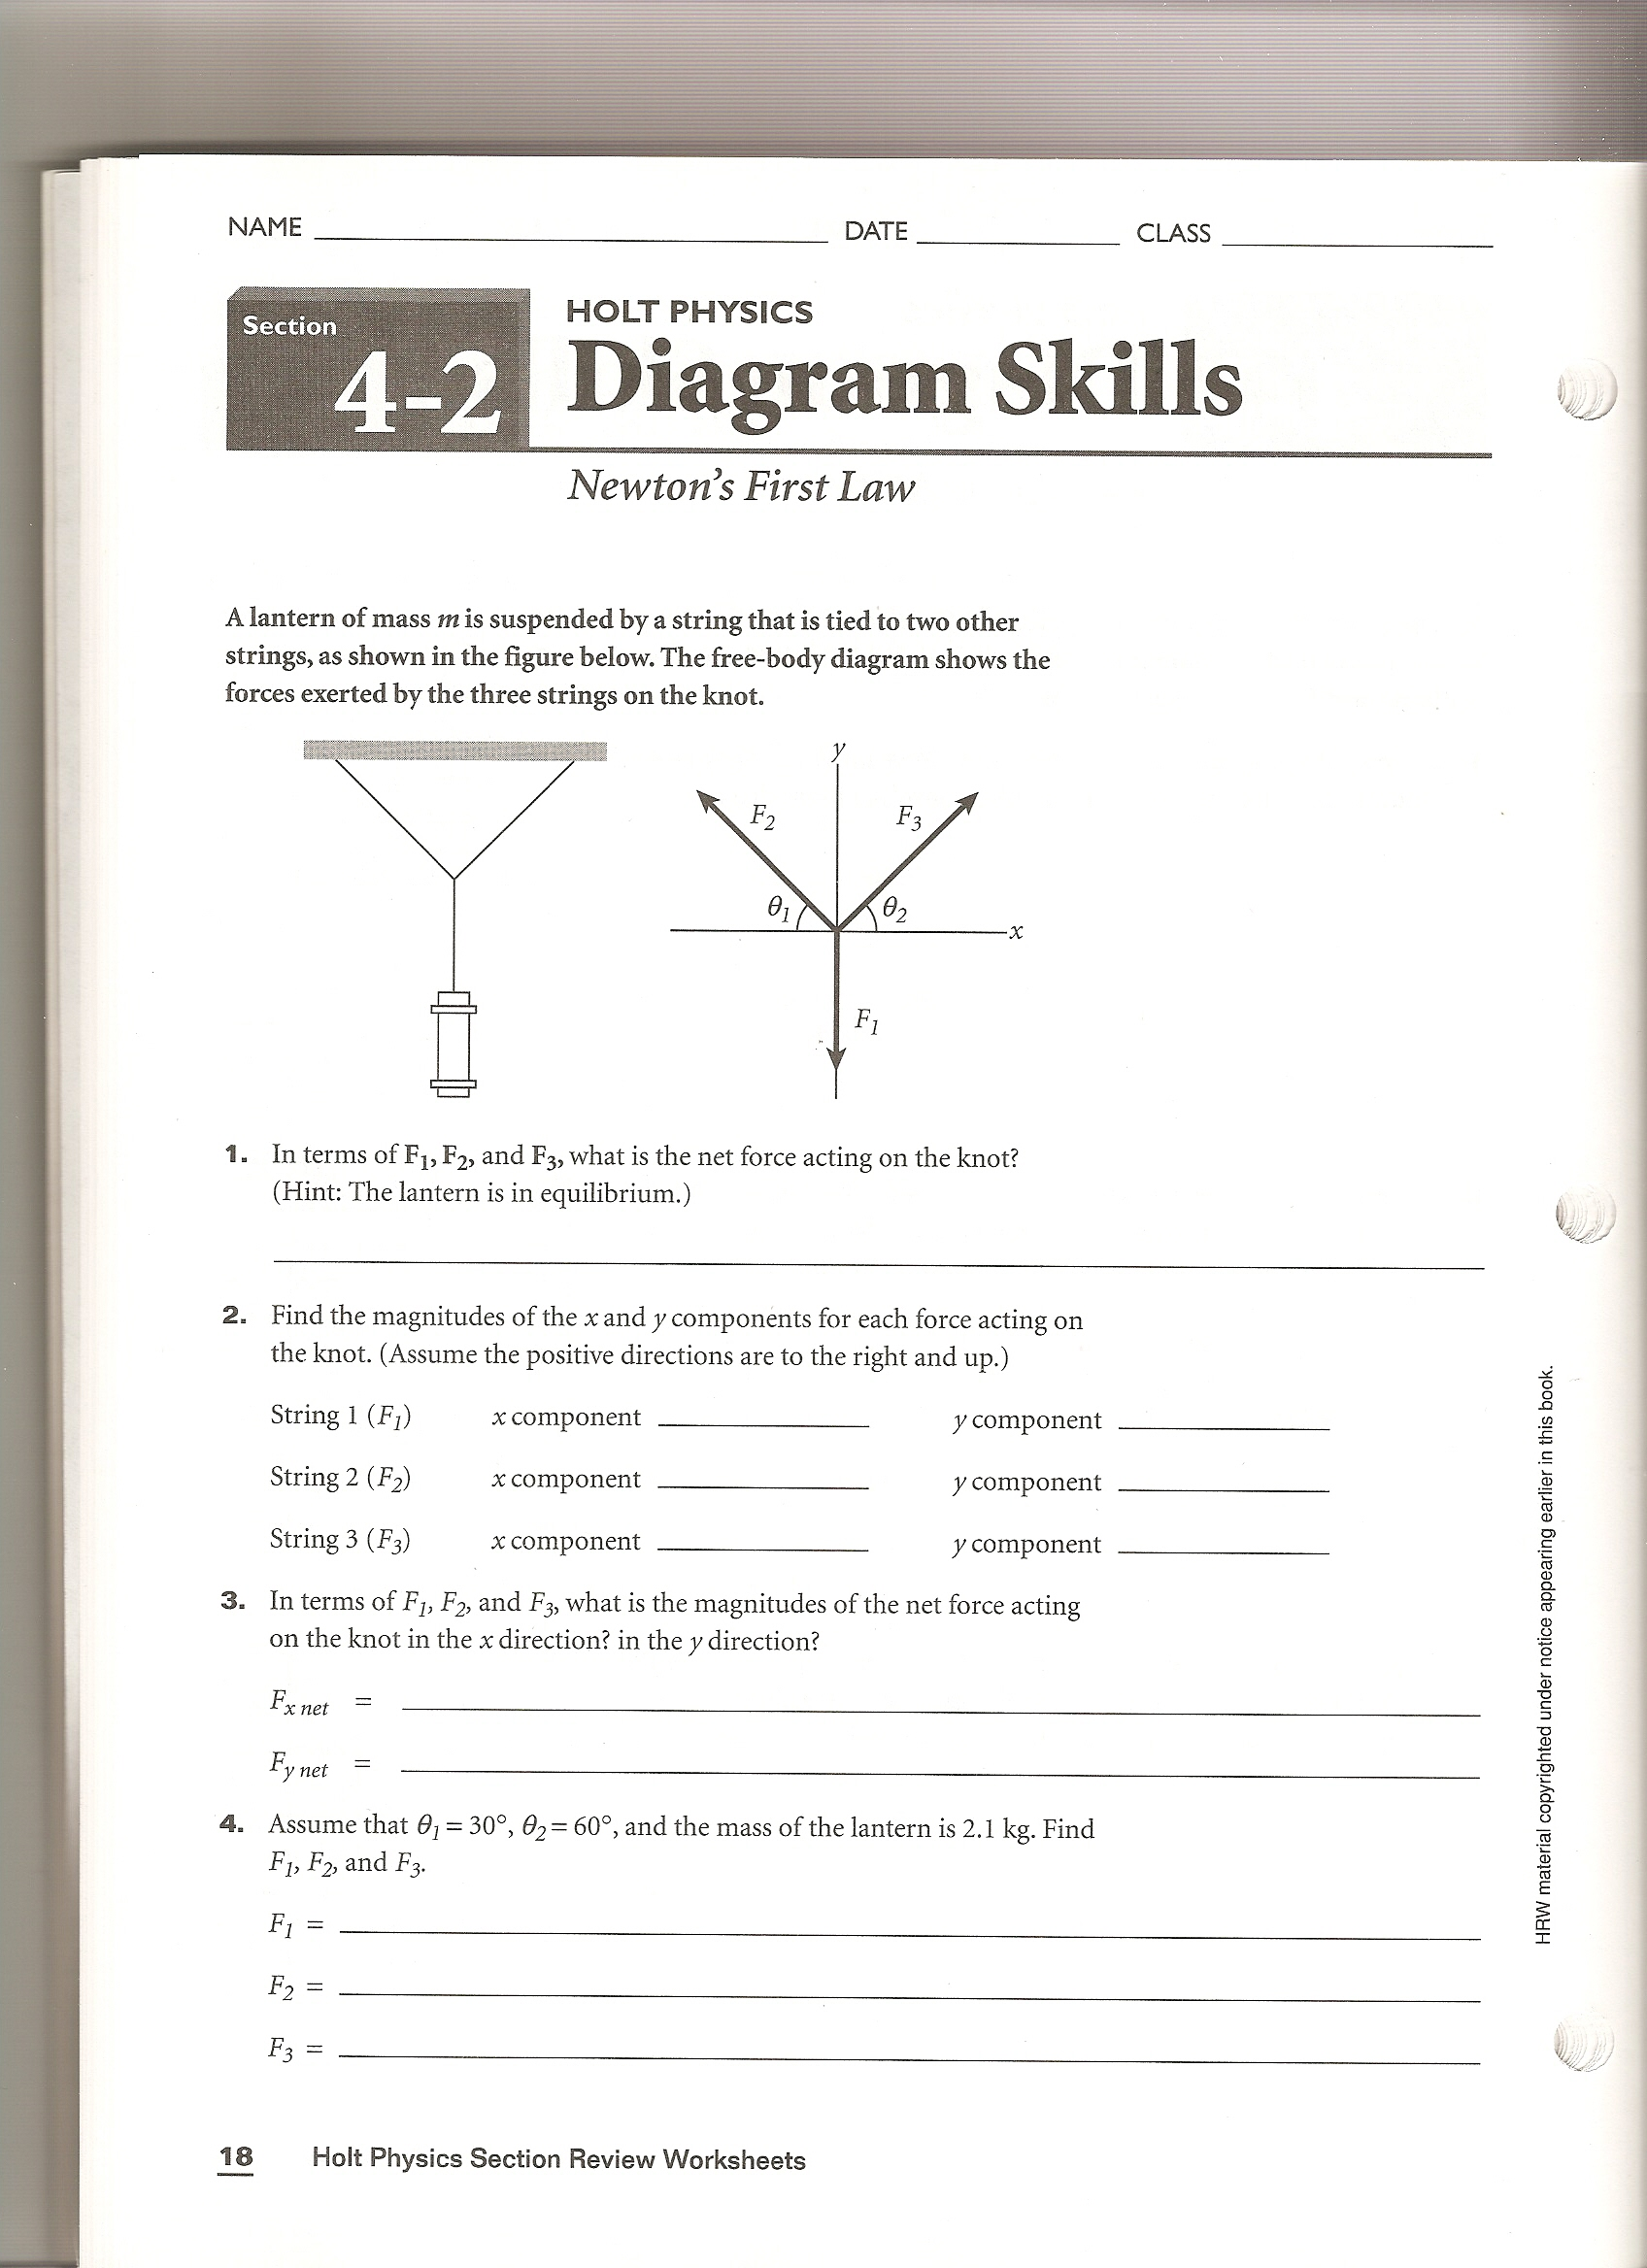 Holt Physics Diagram Skills Answers